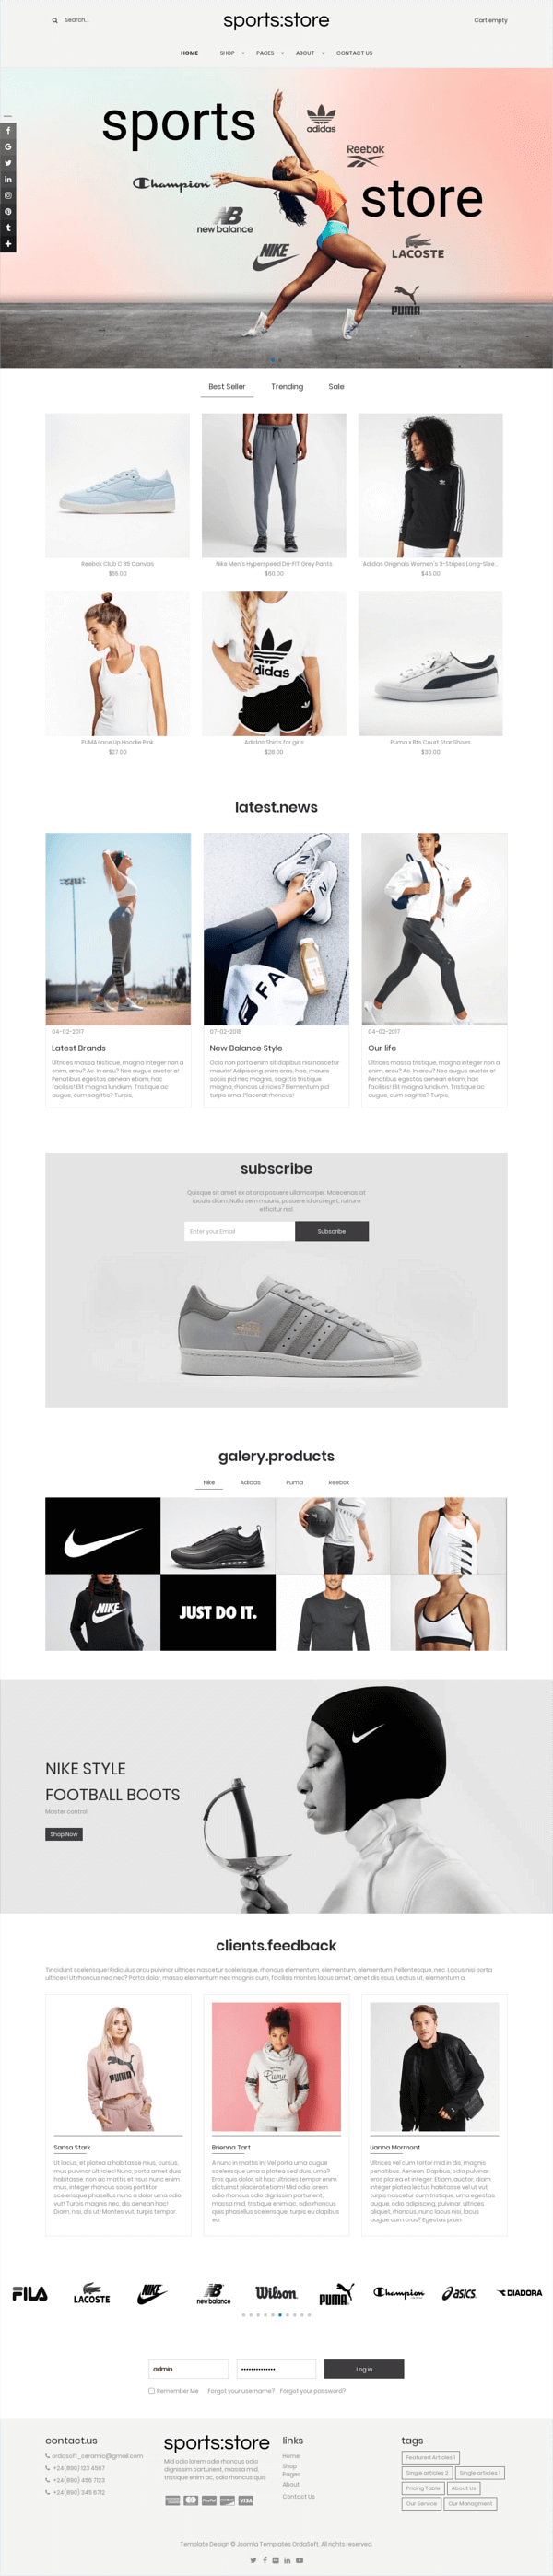 Beauty Supply - Joomla eCommerce template, full screen